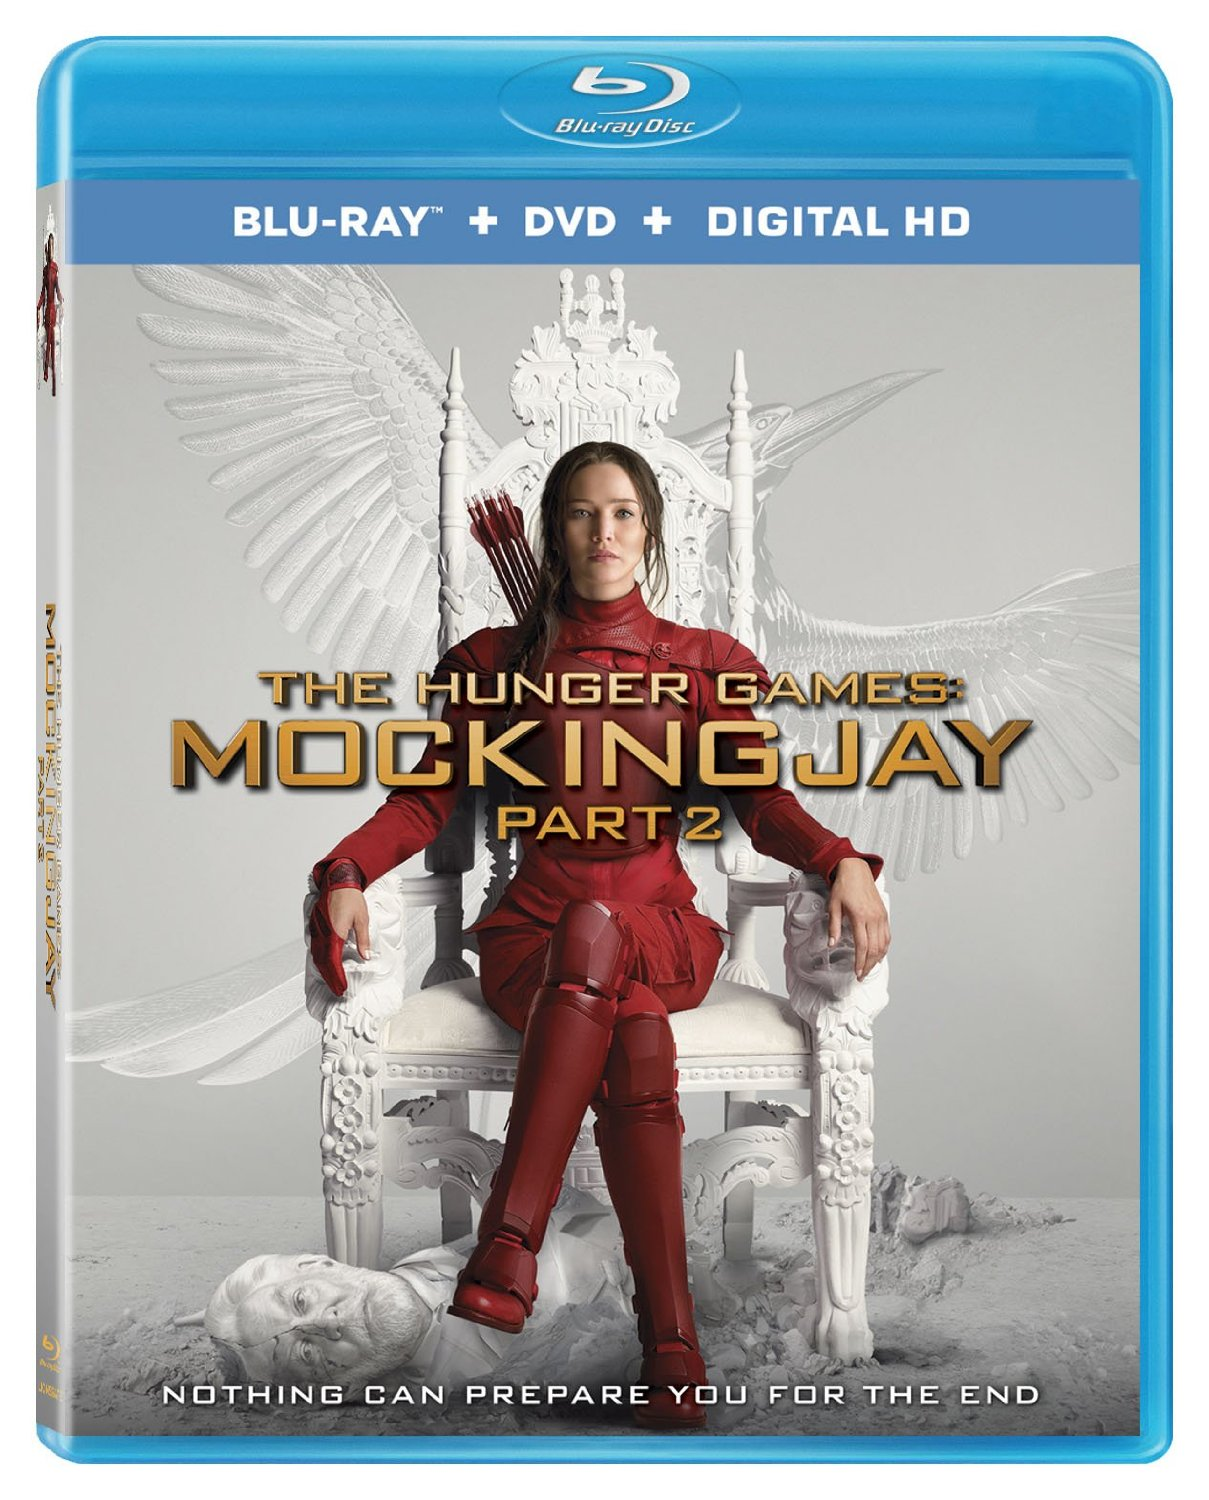 The Hunger Games: Mockingjay Part 2 [Blu-ray] (2015)